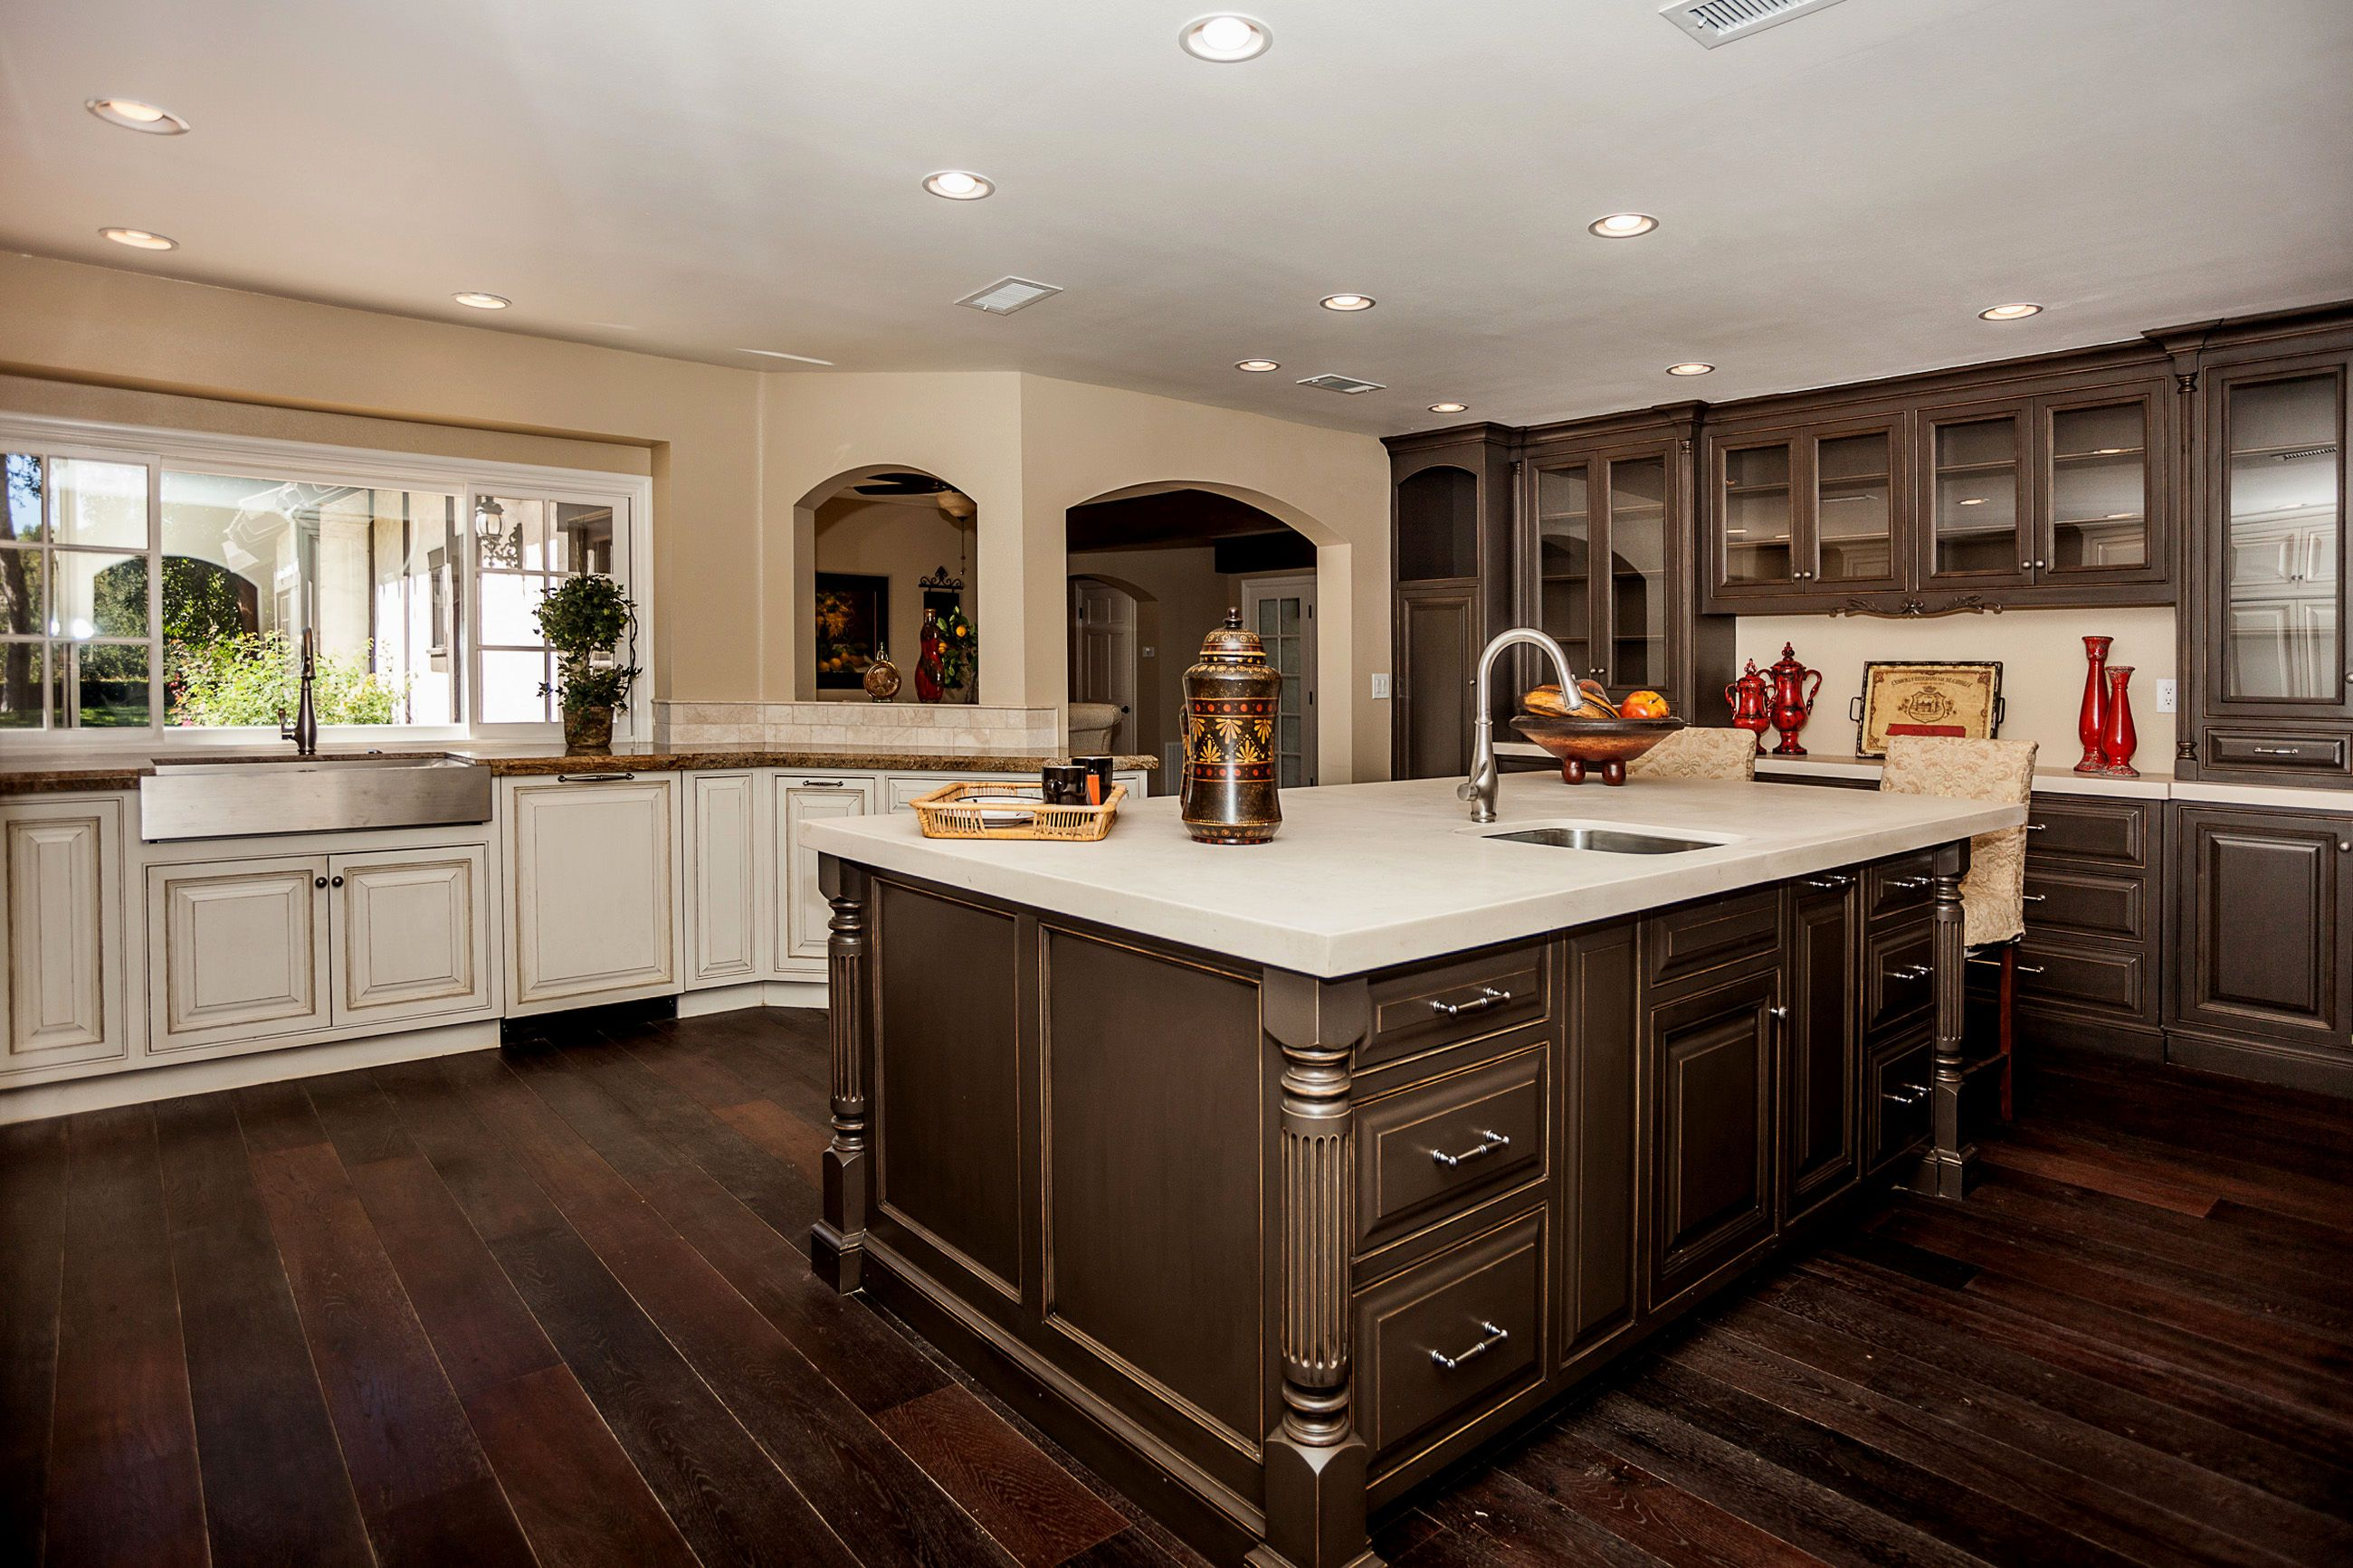 combinations hardwood pierce dark ideas floor wood designs design kitchen in 2019 kitchen on kitchen remodel dark floors id=47699